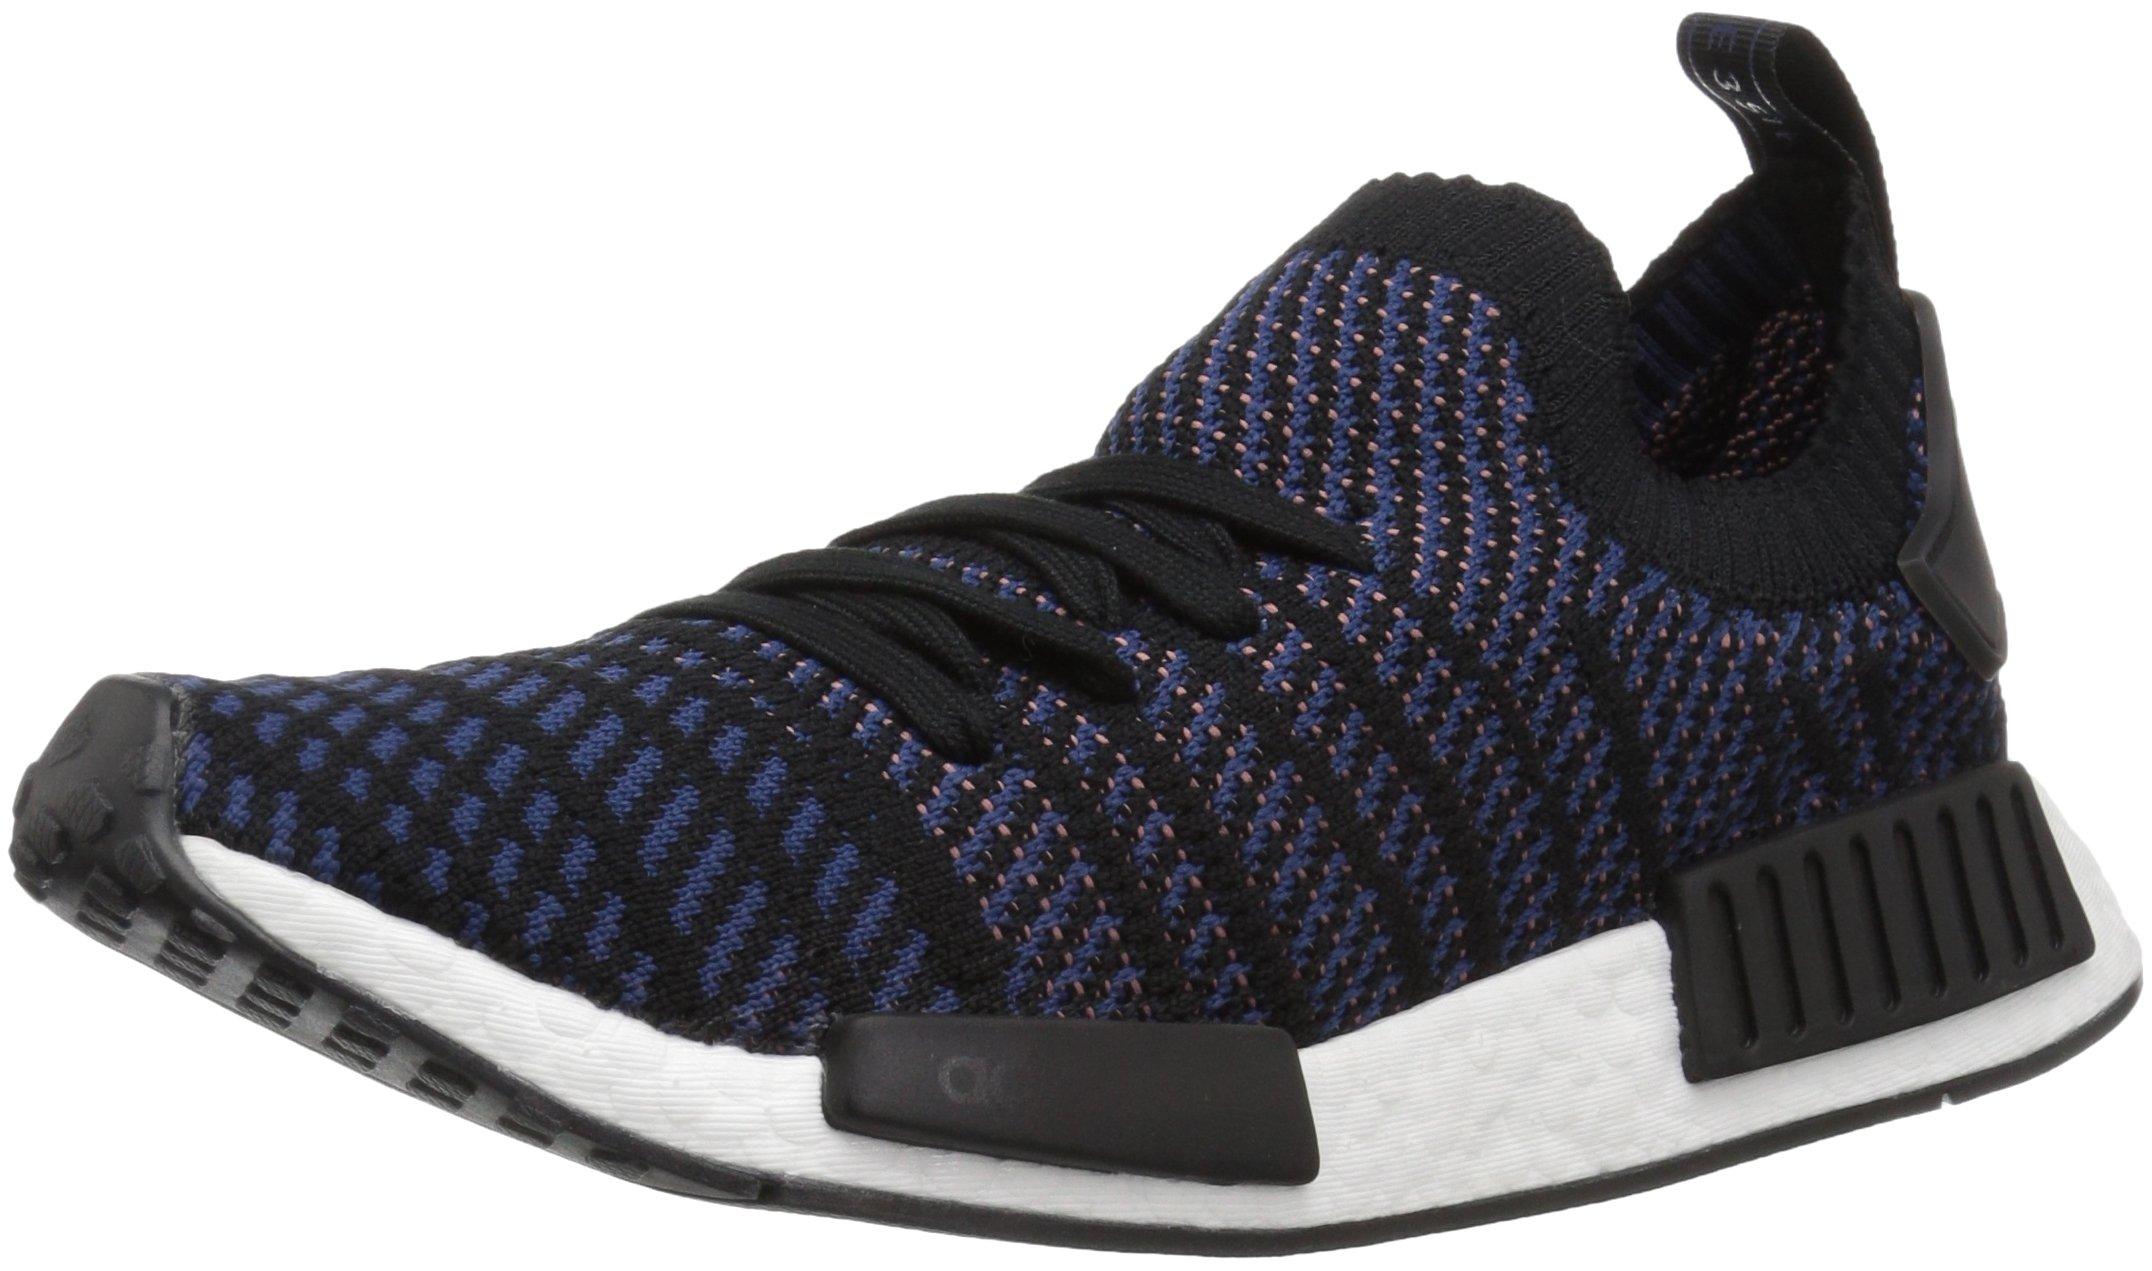 adidas Originals Women's NMD_R1 STLT PK, Black/ash Pink/nobile Indigo, 8 M US